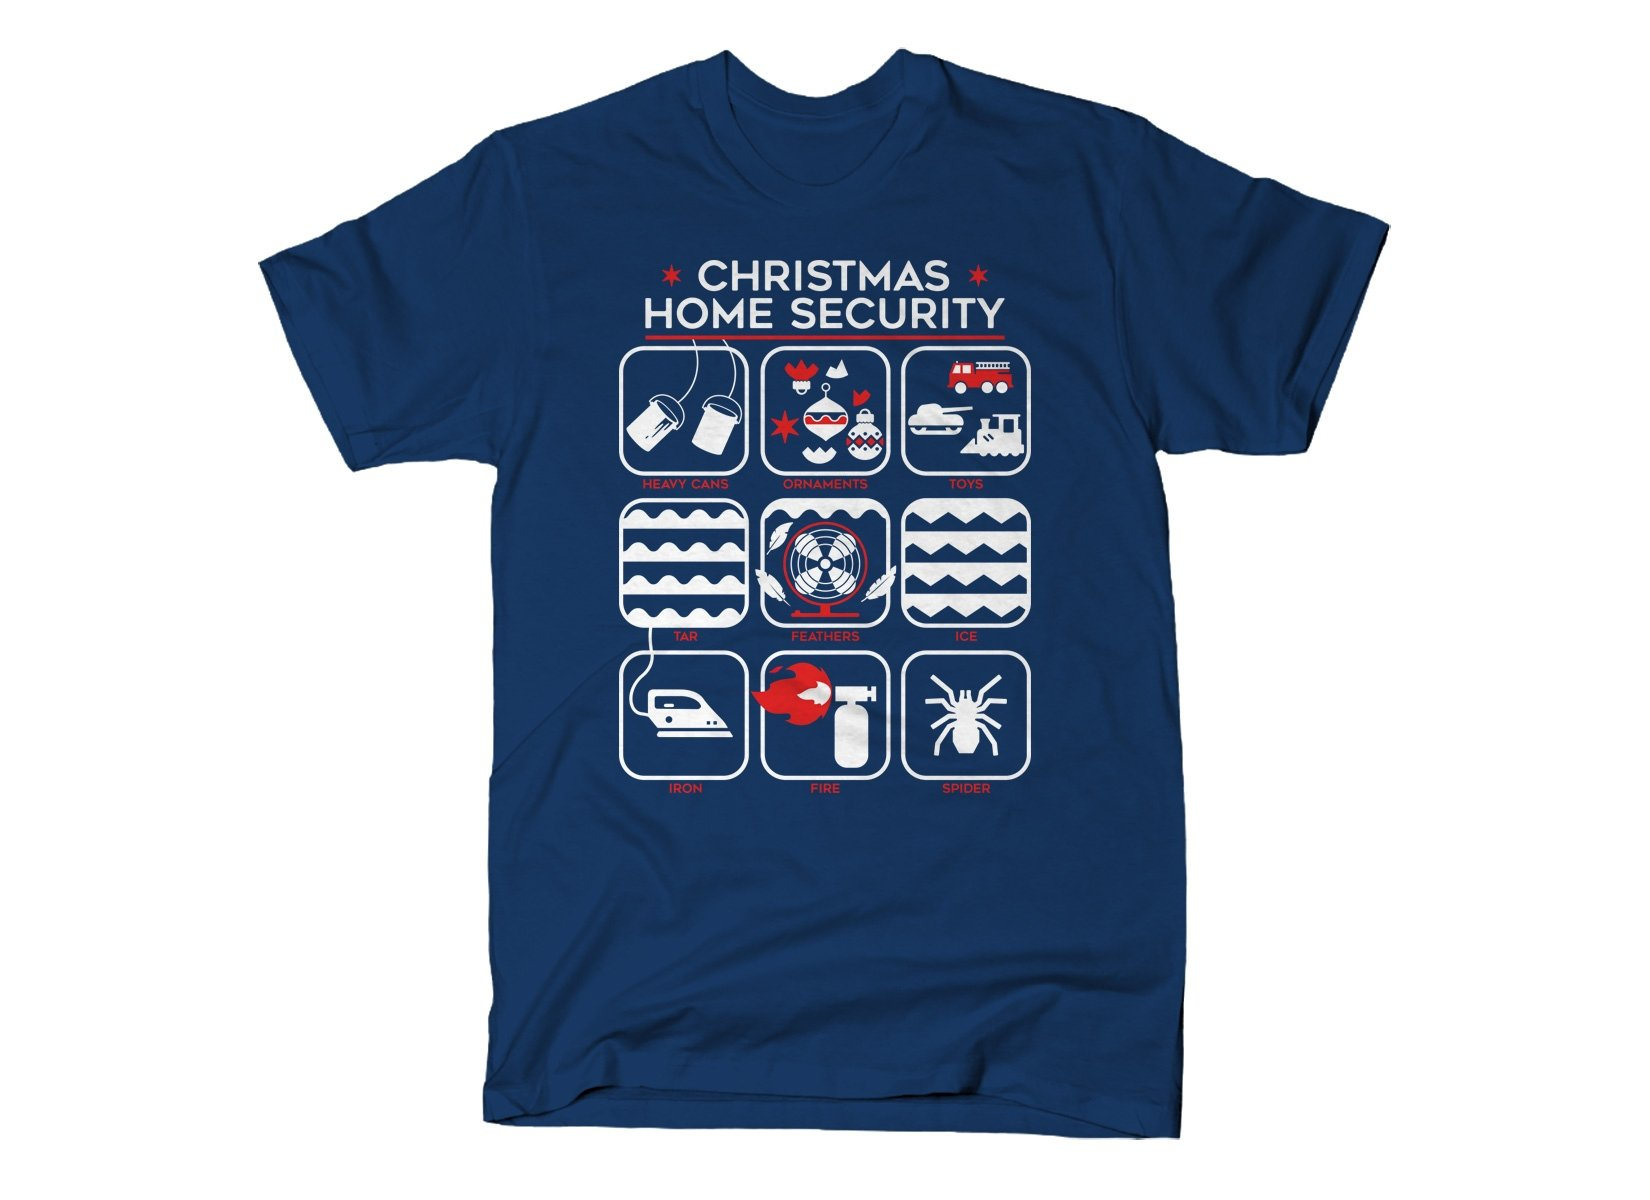 Christmas Home Security on Mens T-Shirt